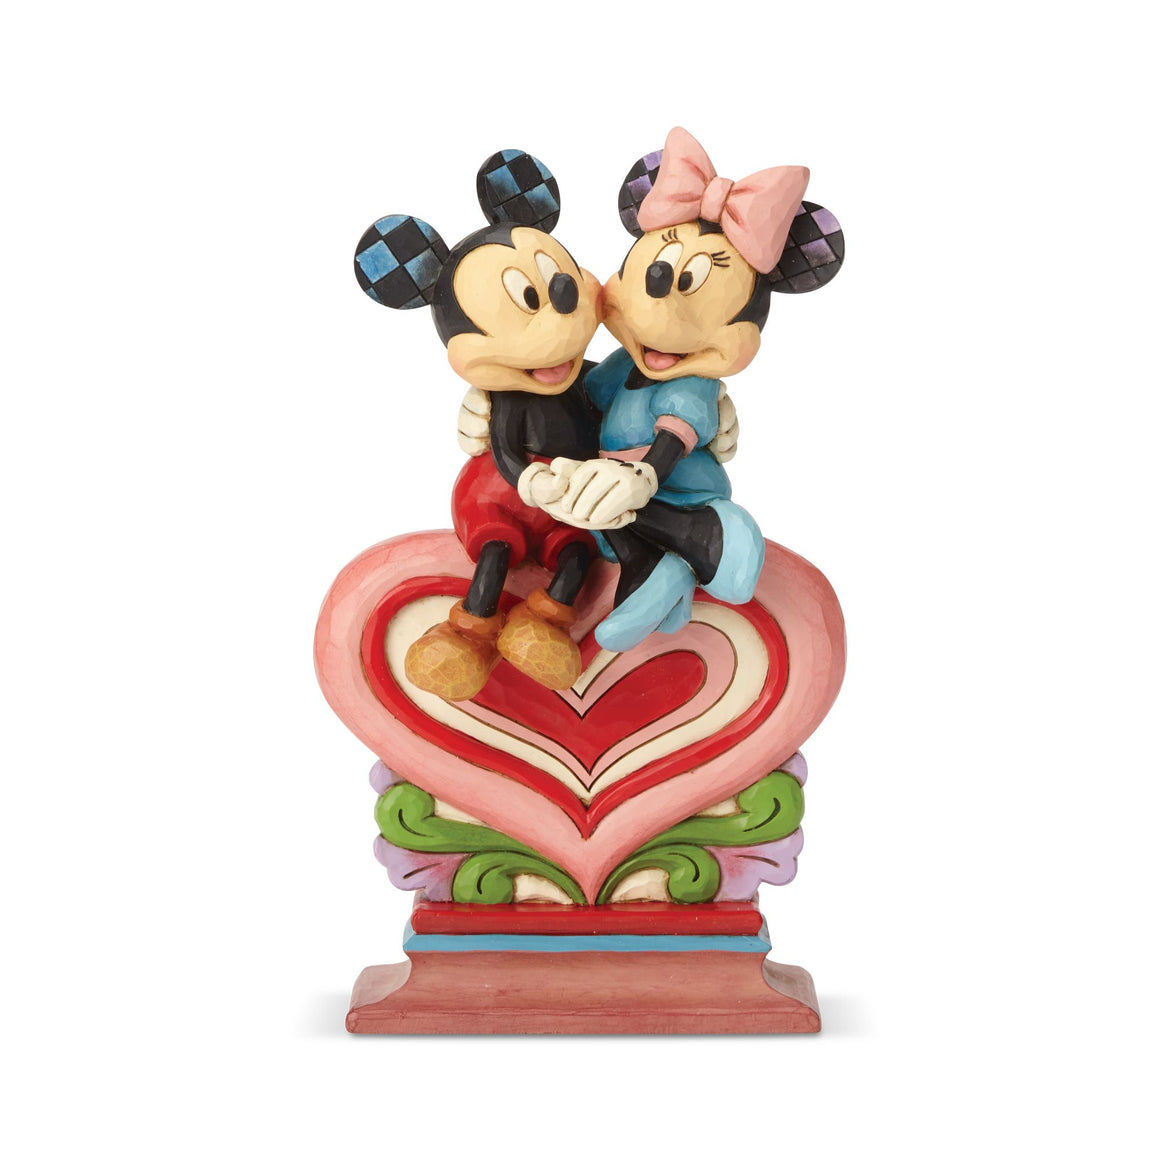 Disney Traditions by Jim Shore Heart to Heart - Mickey Mouse & Minnie Mouse Figurine